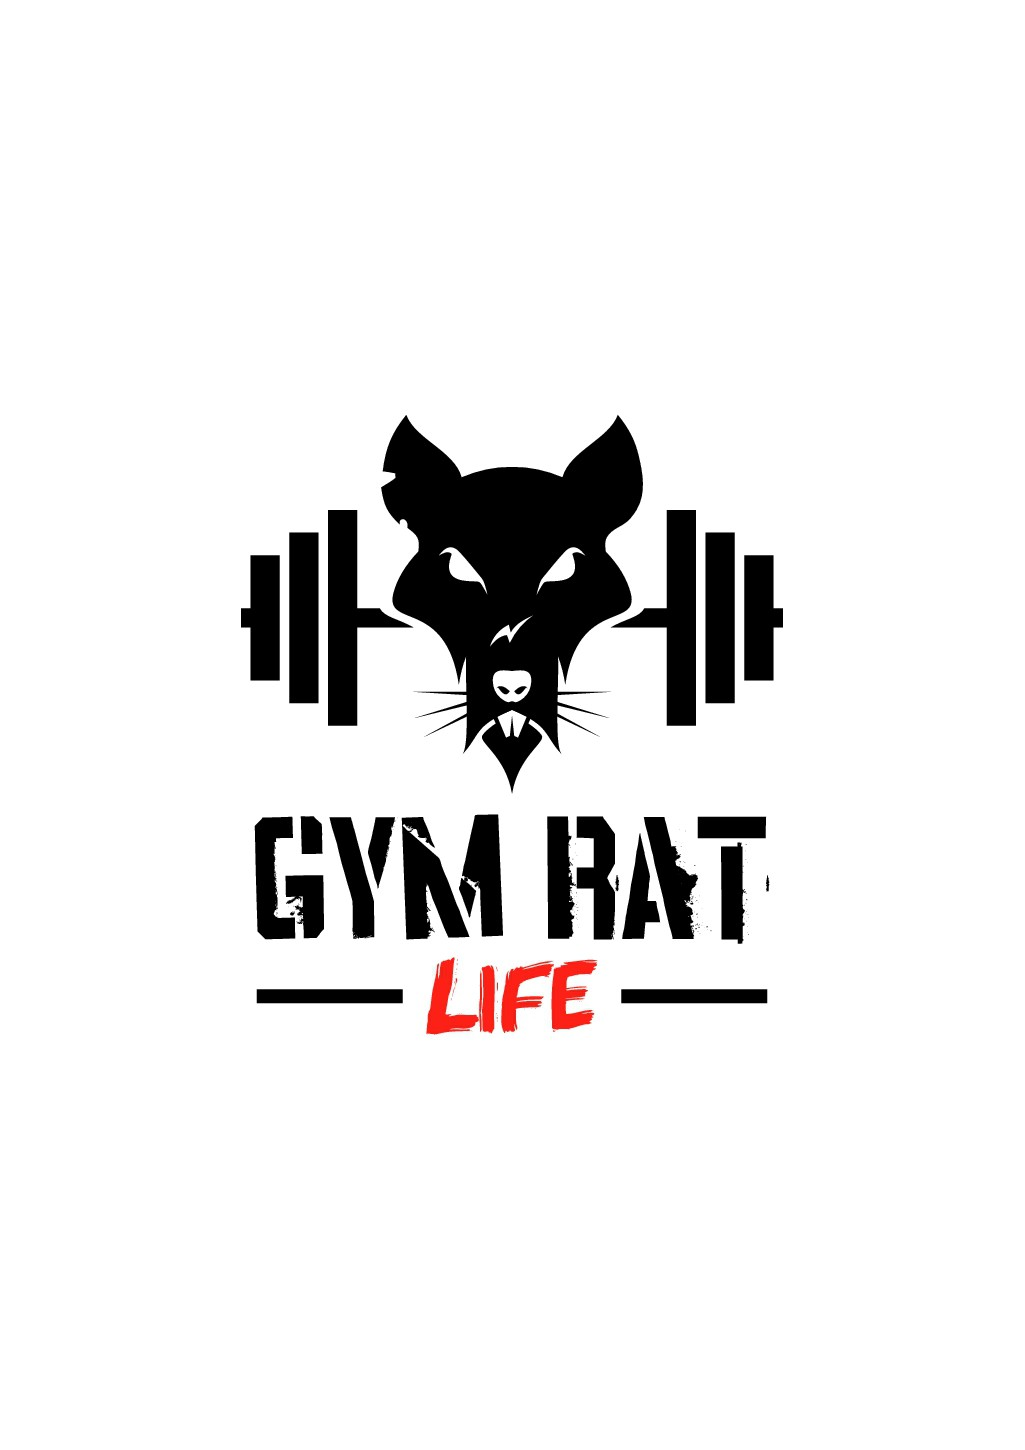 New Fitness/Gym Lifestyle website needs a logo/mascot!